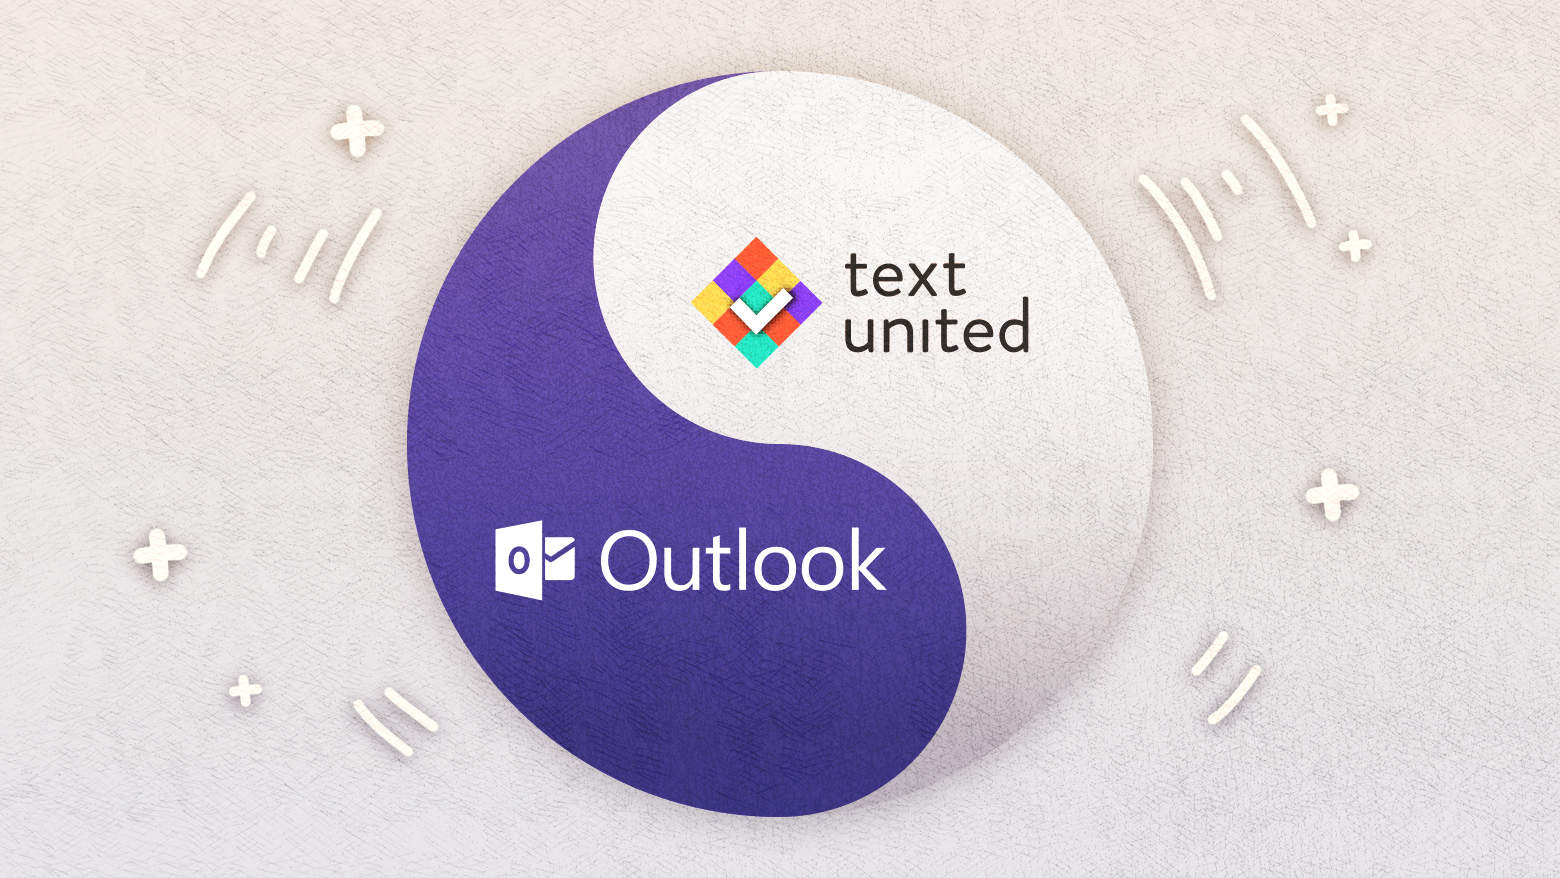 outlook.localization